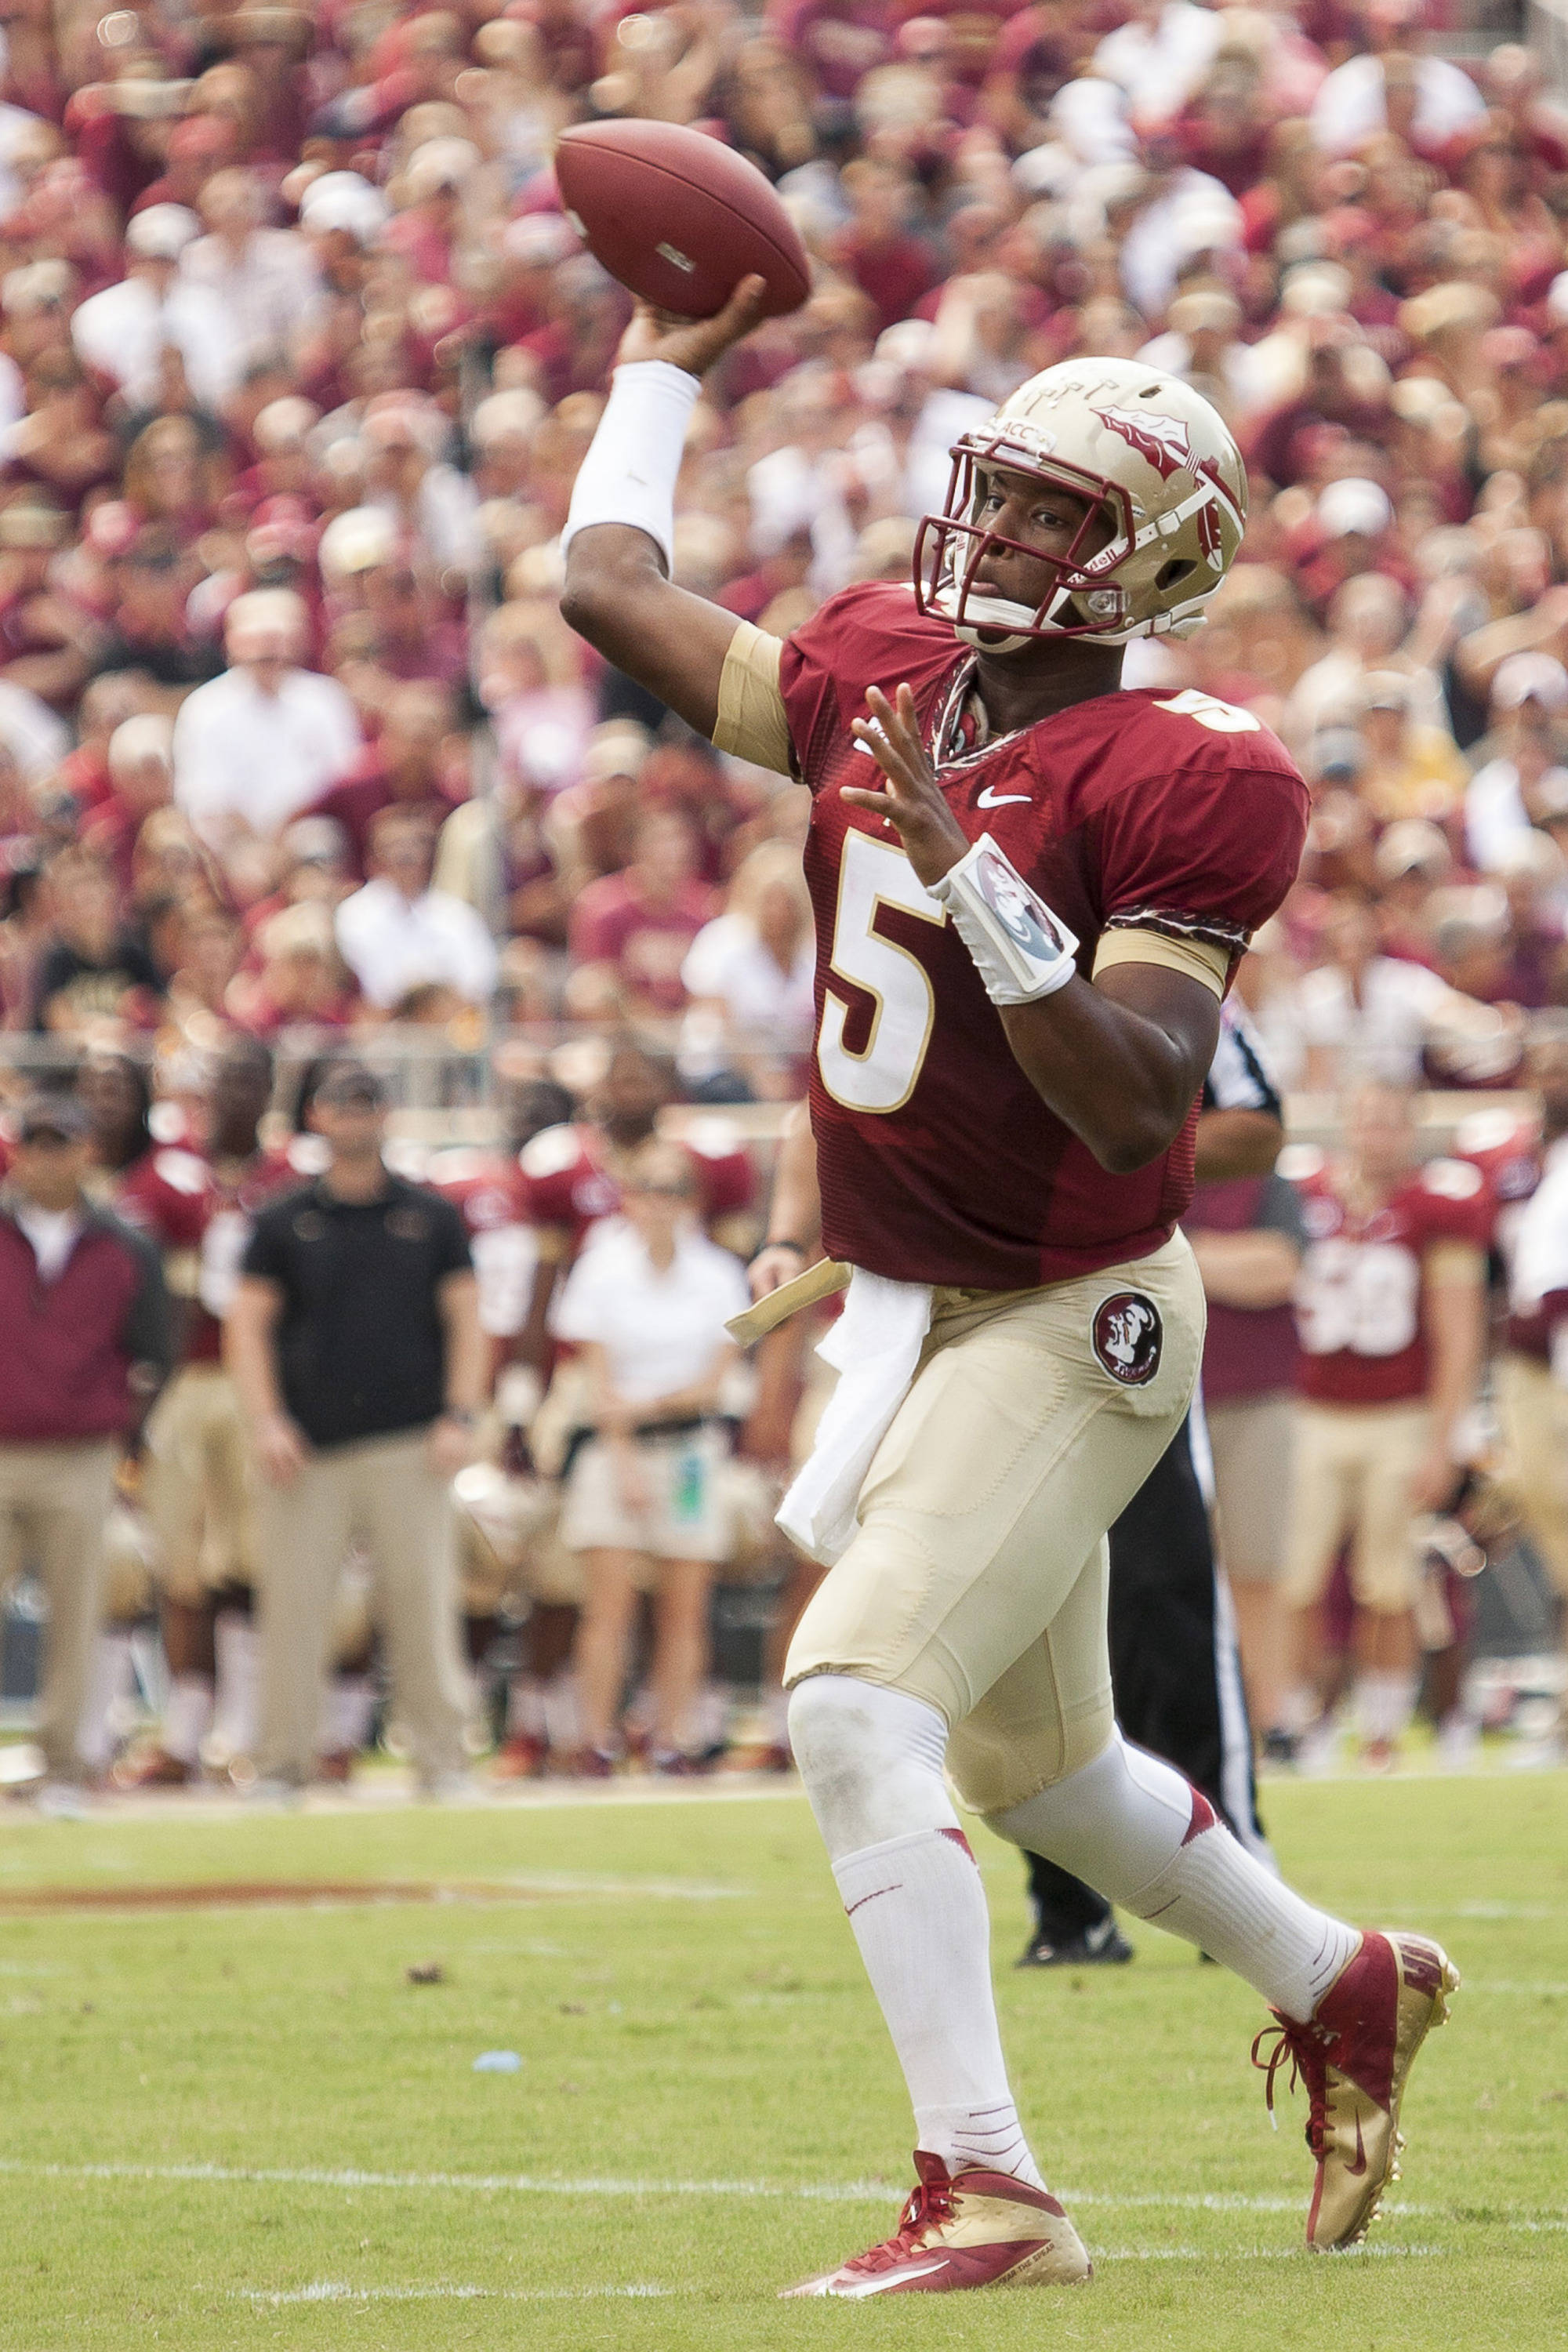 Jameis Winston (5) throws a pass during FSU's 62-7 win over Nevada on Saturday, Sept 14, 2013 in Tallahassee, Fla.